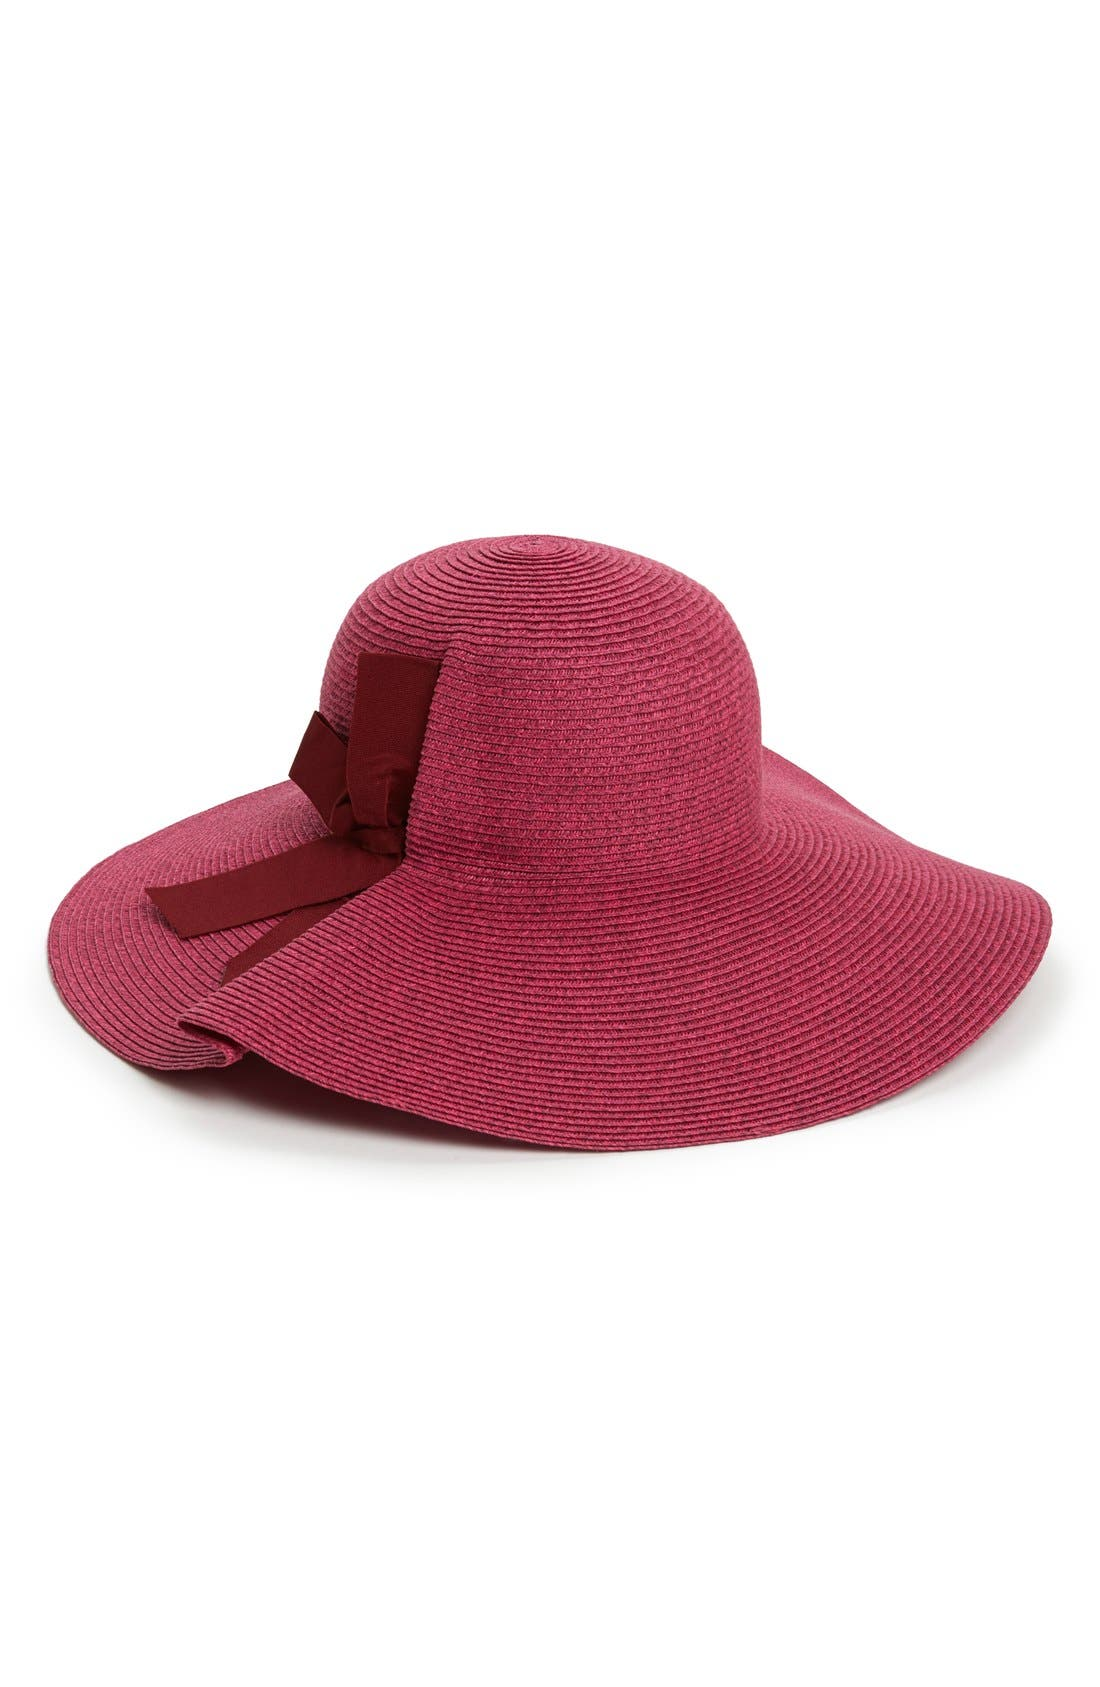 Main Image - Jessica Simpson Side Bow Floppy Hat